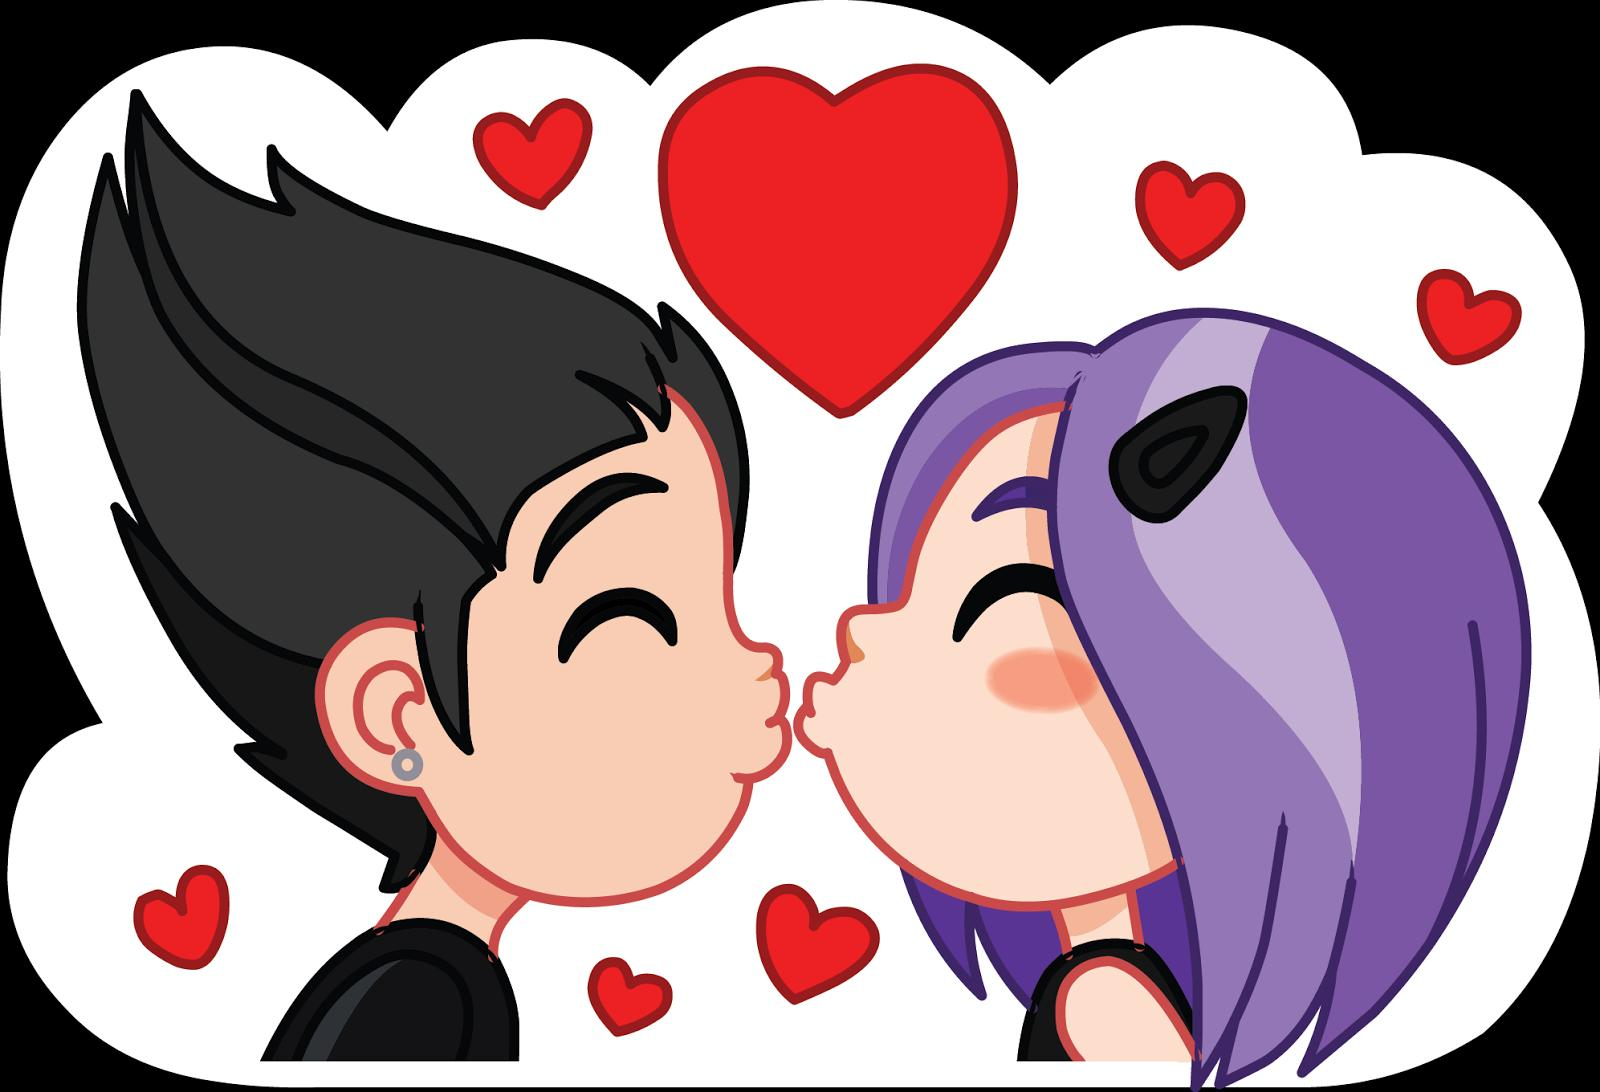 Kiss Me Love Stickers For Android Apk Download